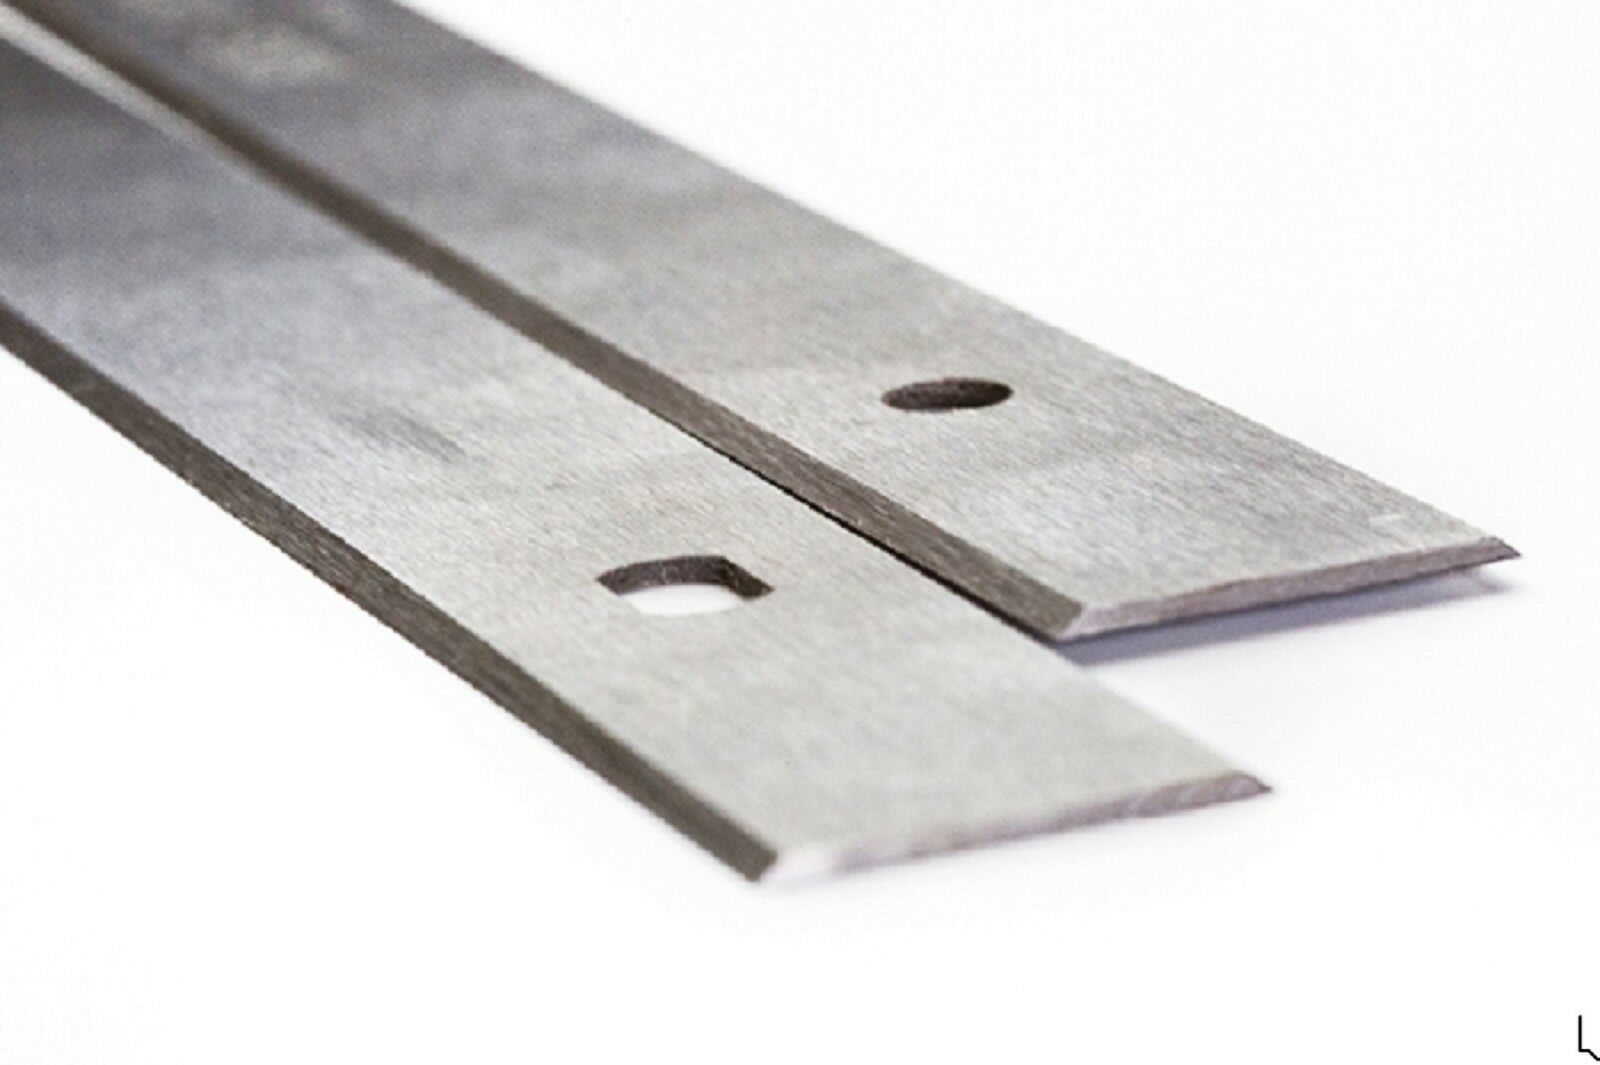 Metabo HC260C 260K Disposable Planer Blades Ref, 0911030713 S700S3 FREE Shipping